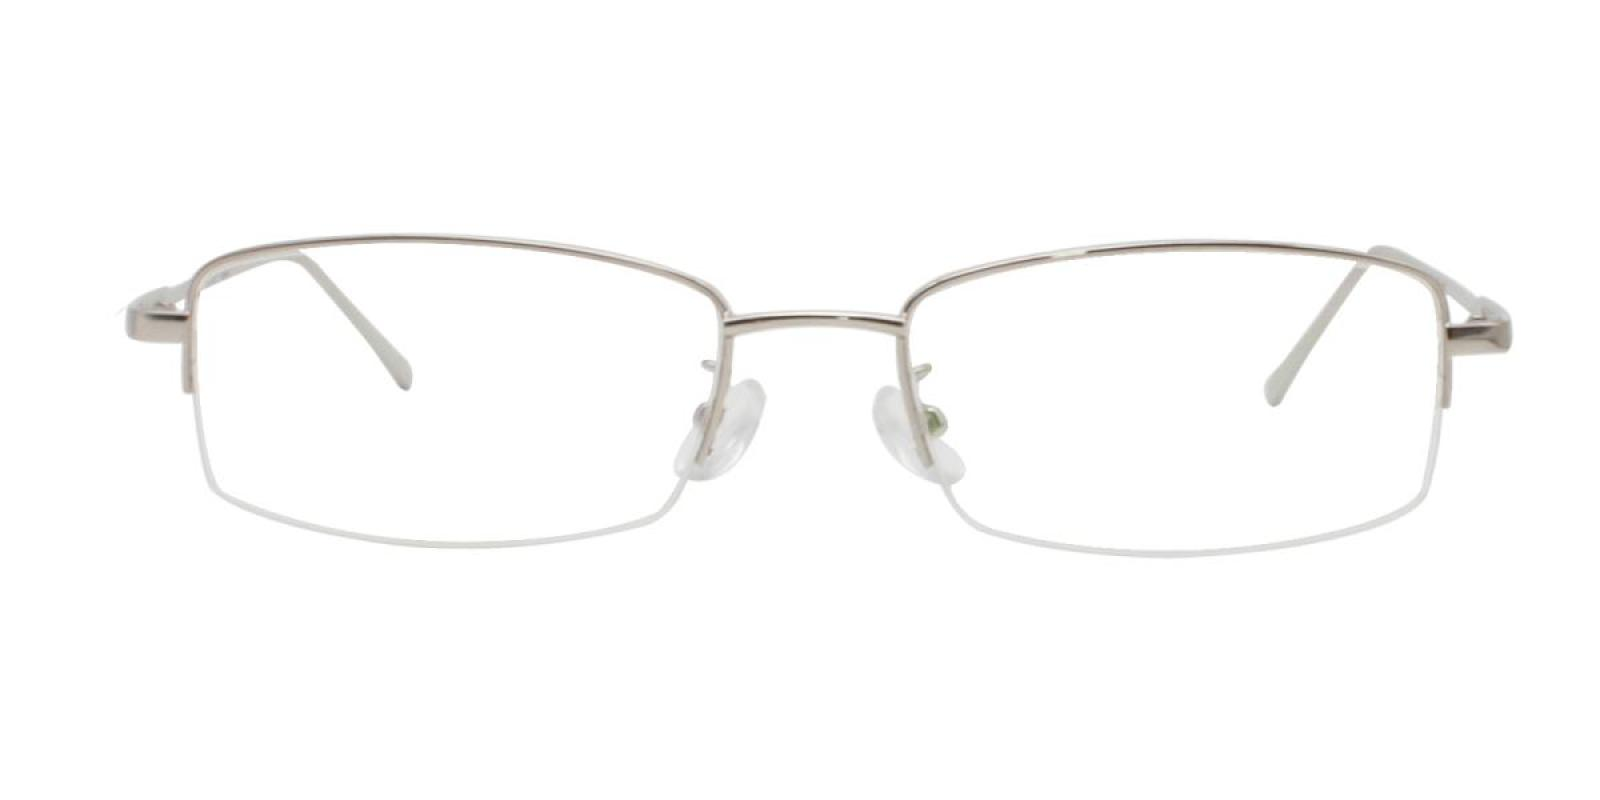 Germantown-Silver-Rectangle-Metal-Eyeglasses-additional2